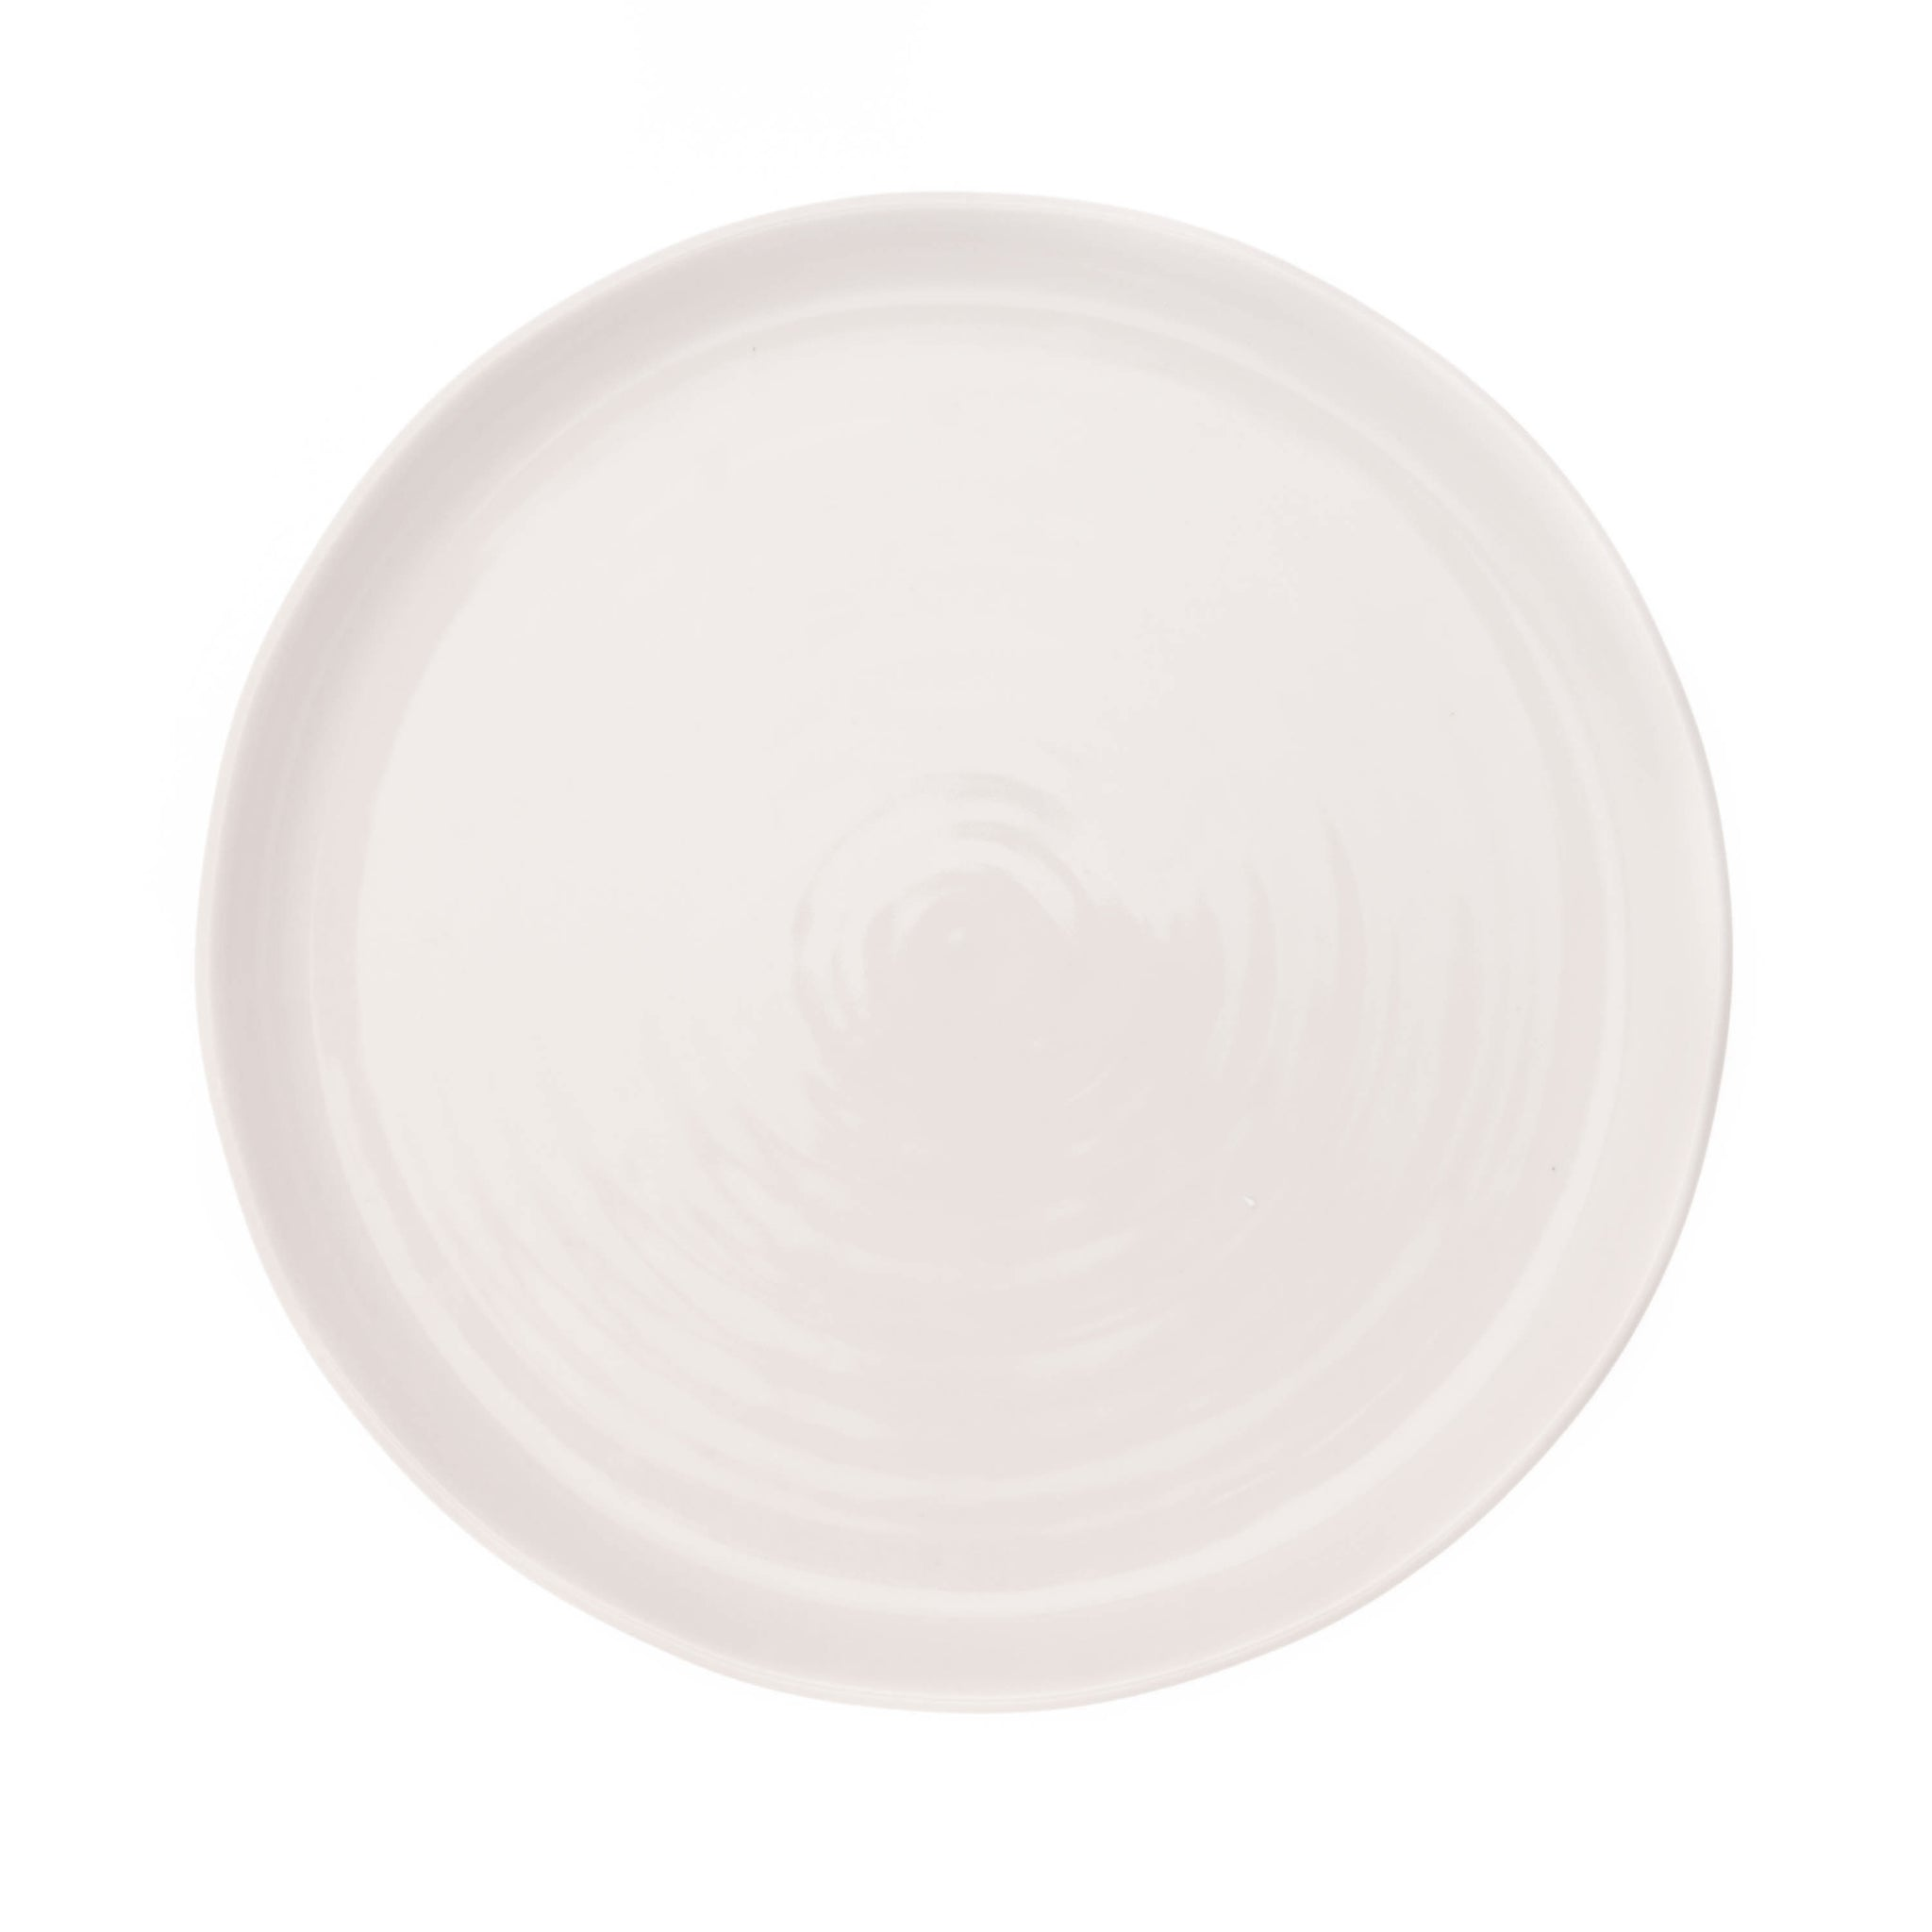 Pinch Dinner Plate in White - Set of 4